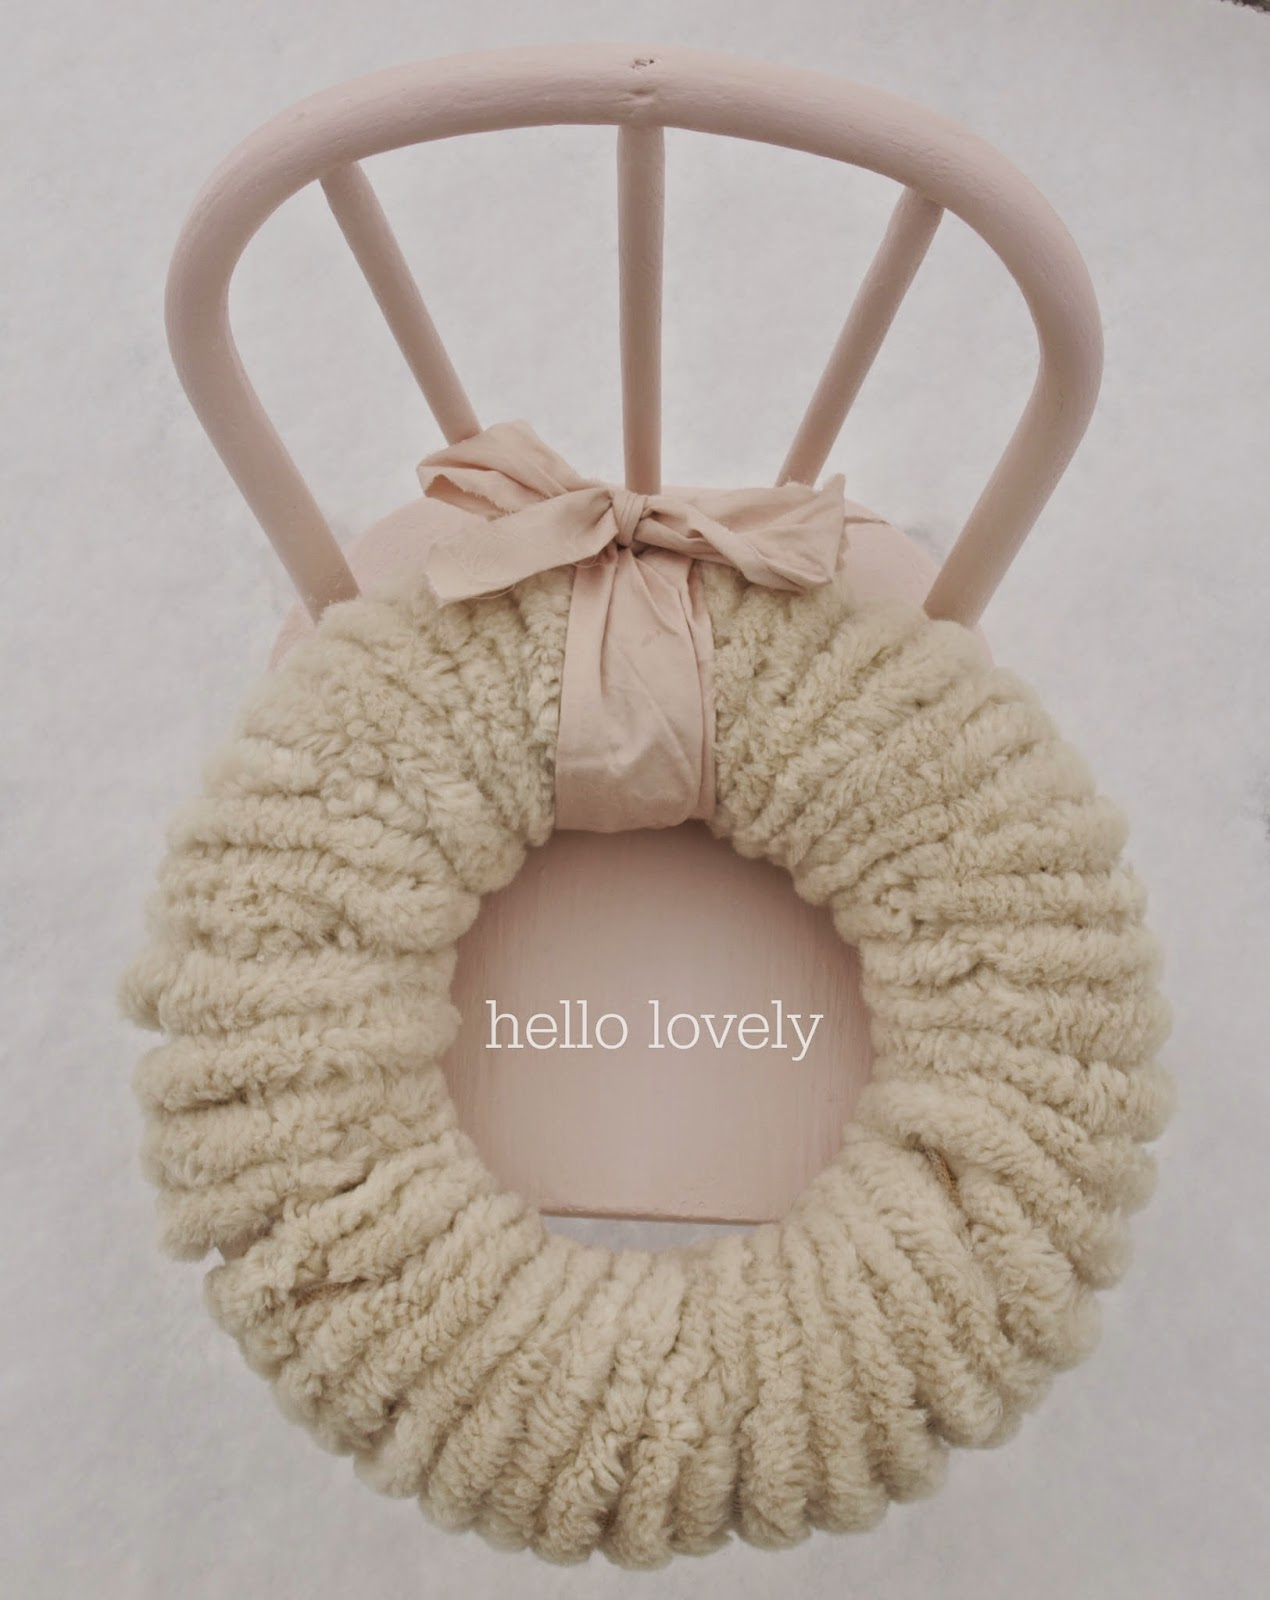 hello-lovely-studio-wolly-pom-pom-wreath-pink-ribbon-chair-snow